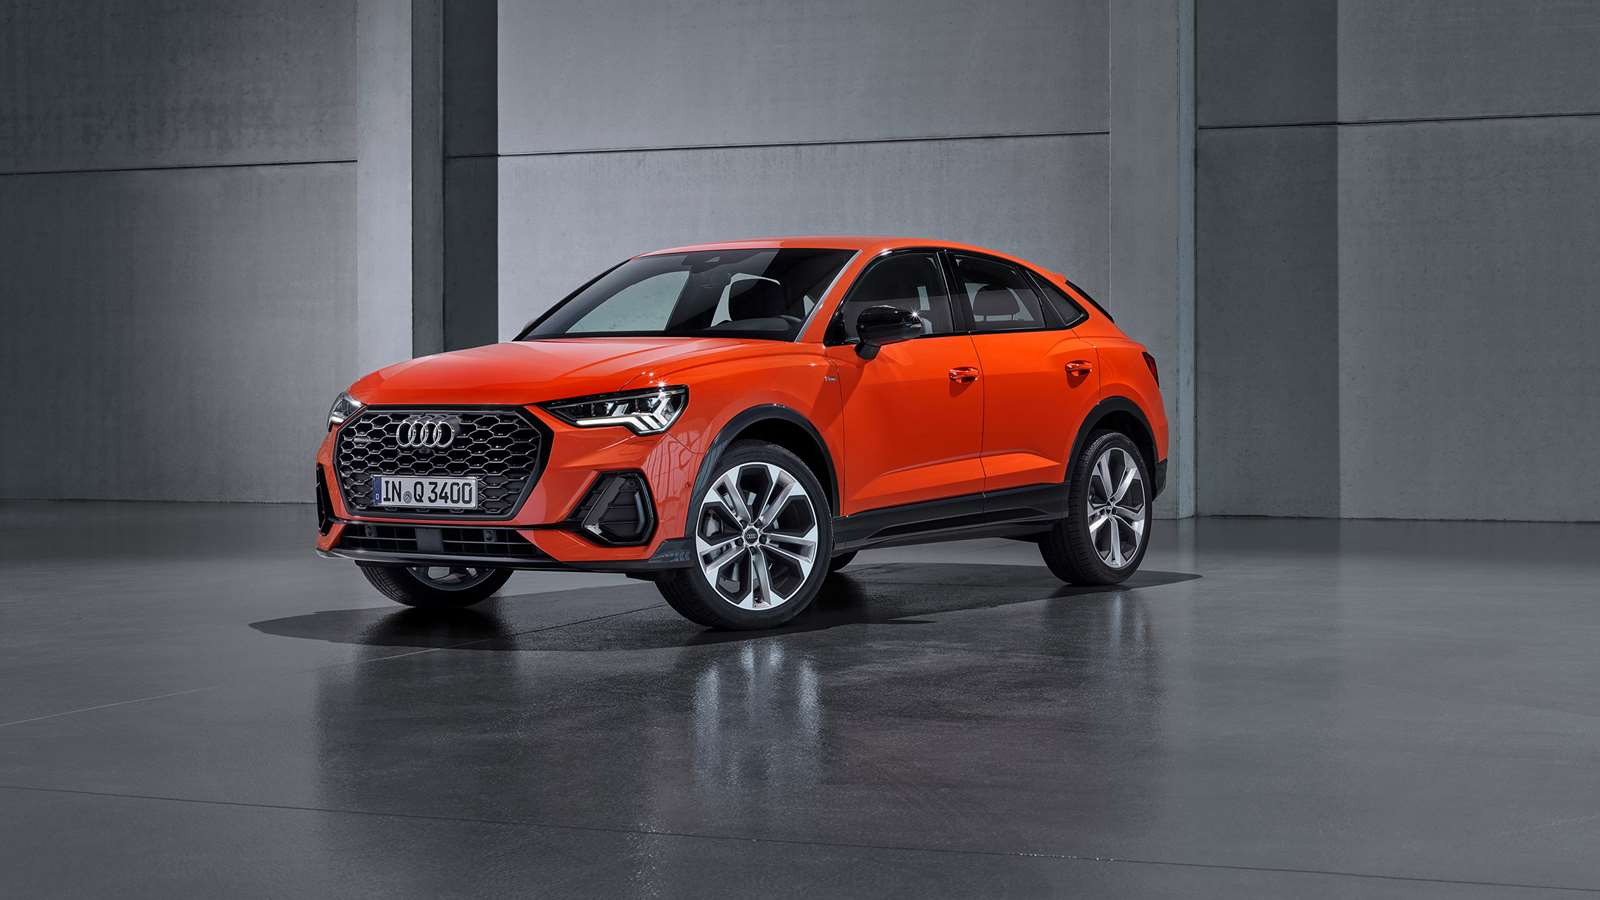 The Q3 Sportback is Audi's coupé-styled Q3